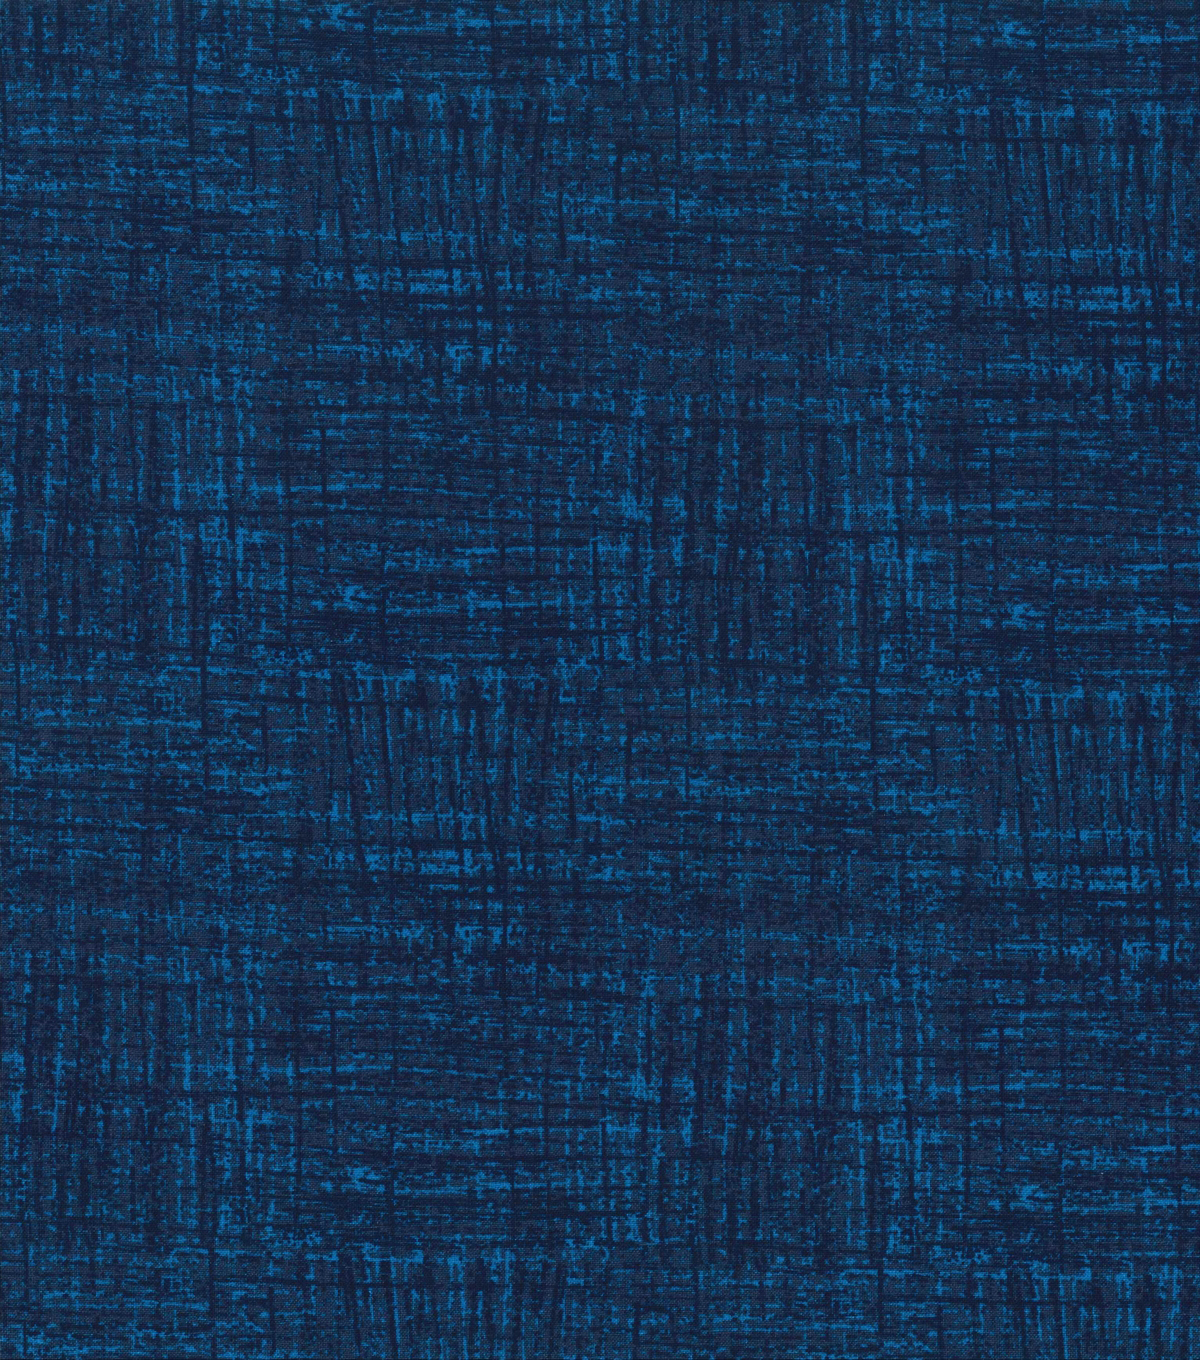 Keepsake Calico Cotton Fabric 43\u0022-Blue Lolite Crosshatch Blender